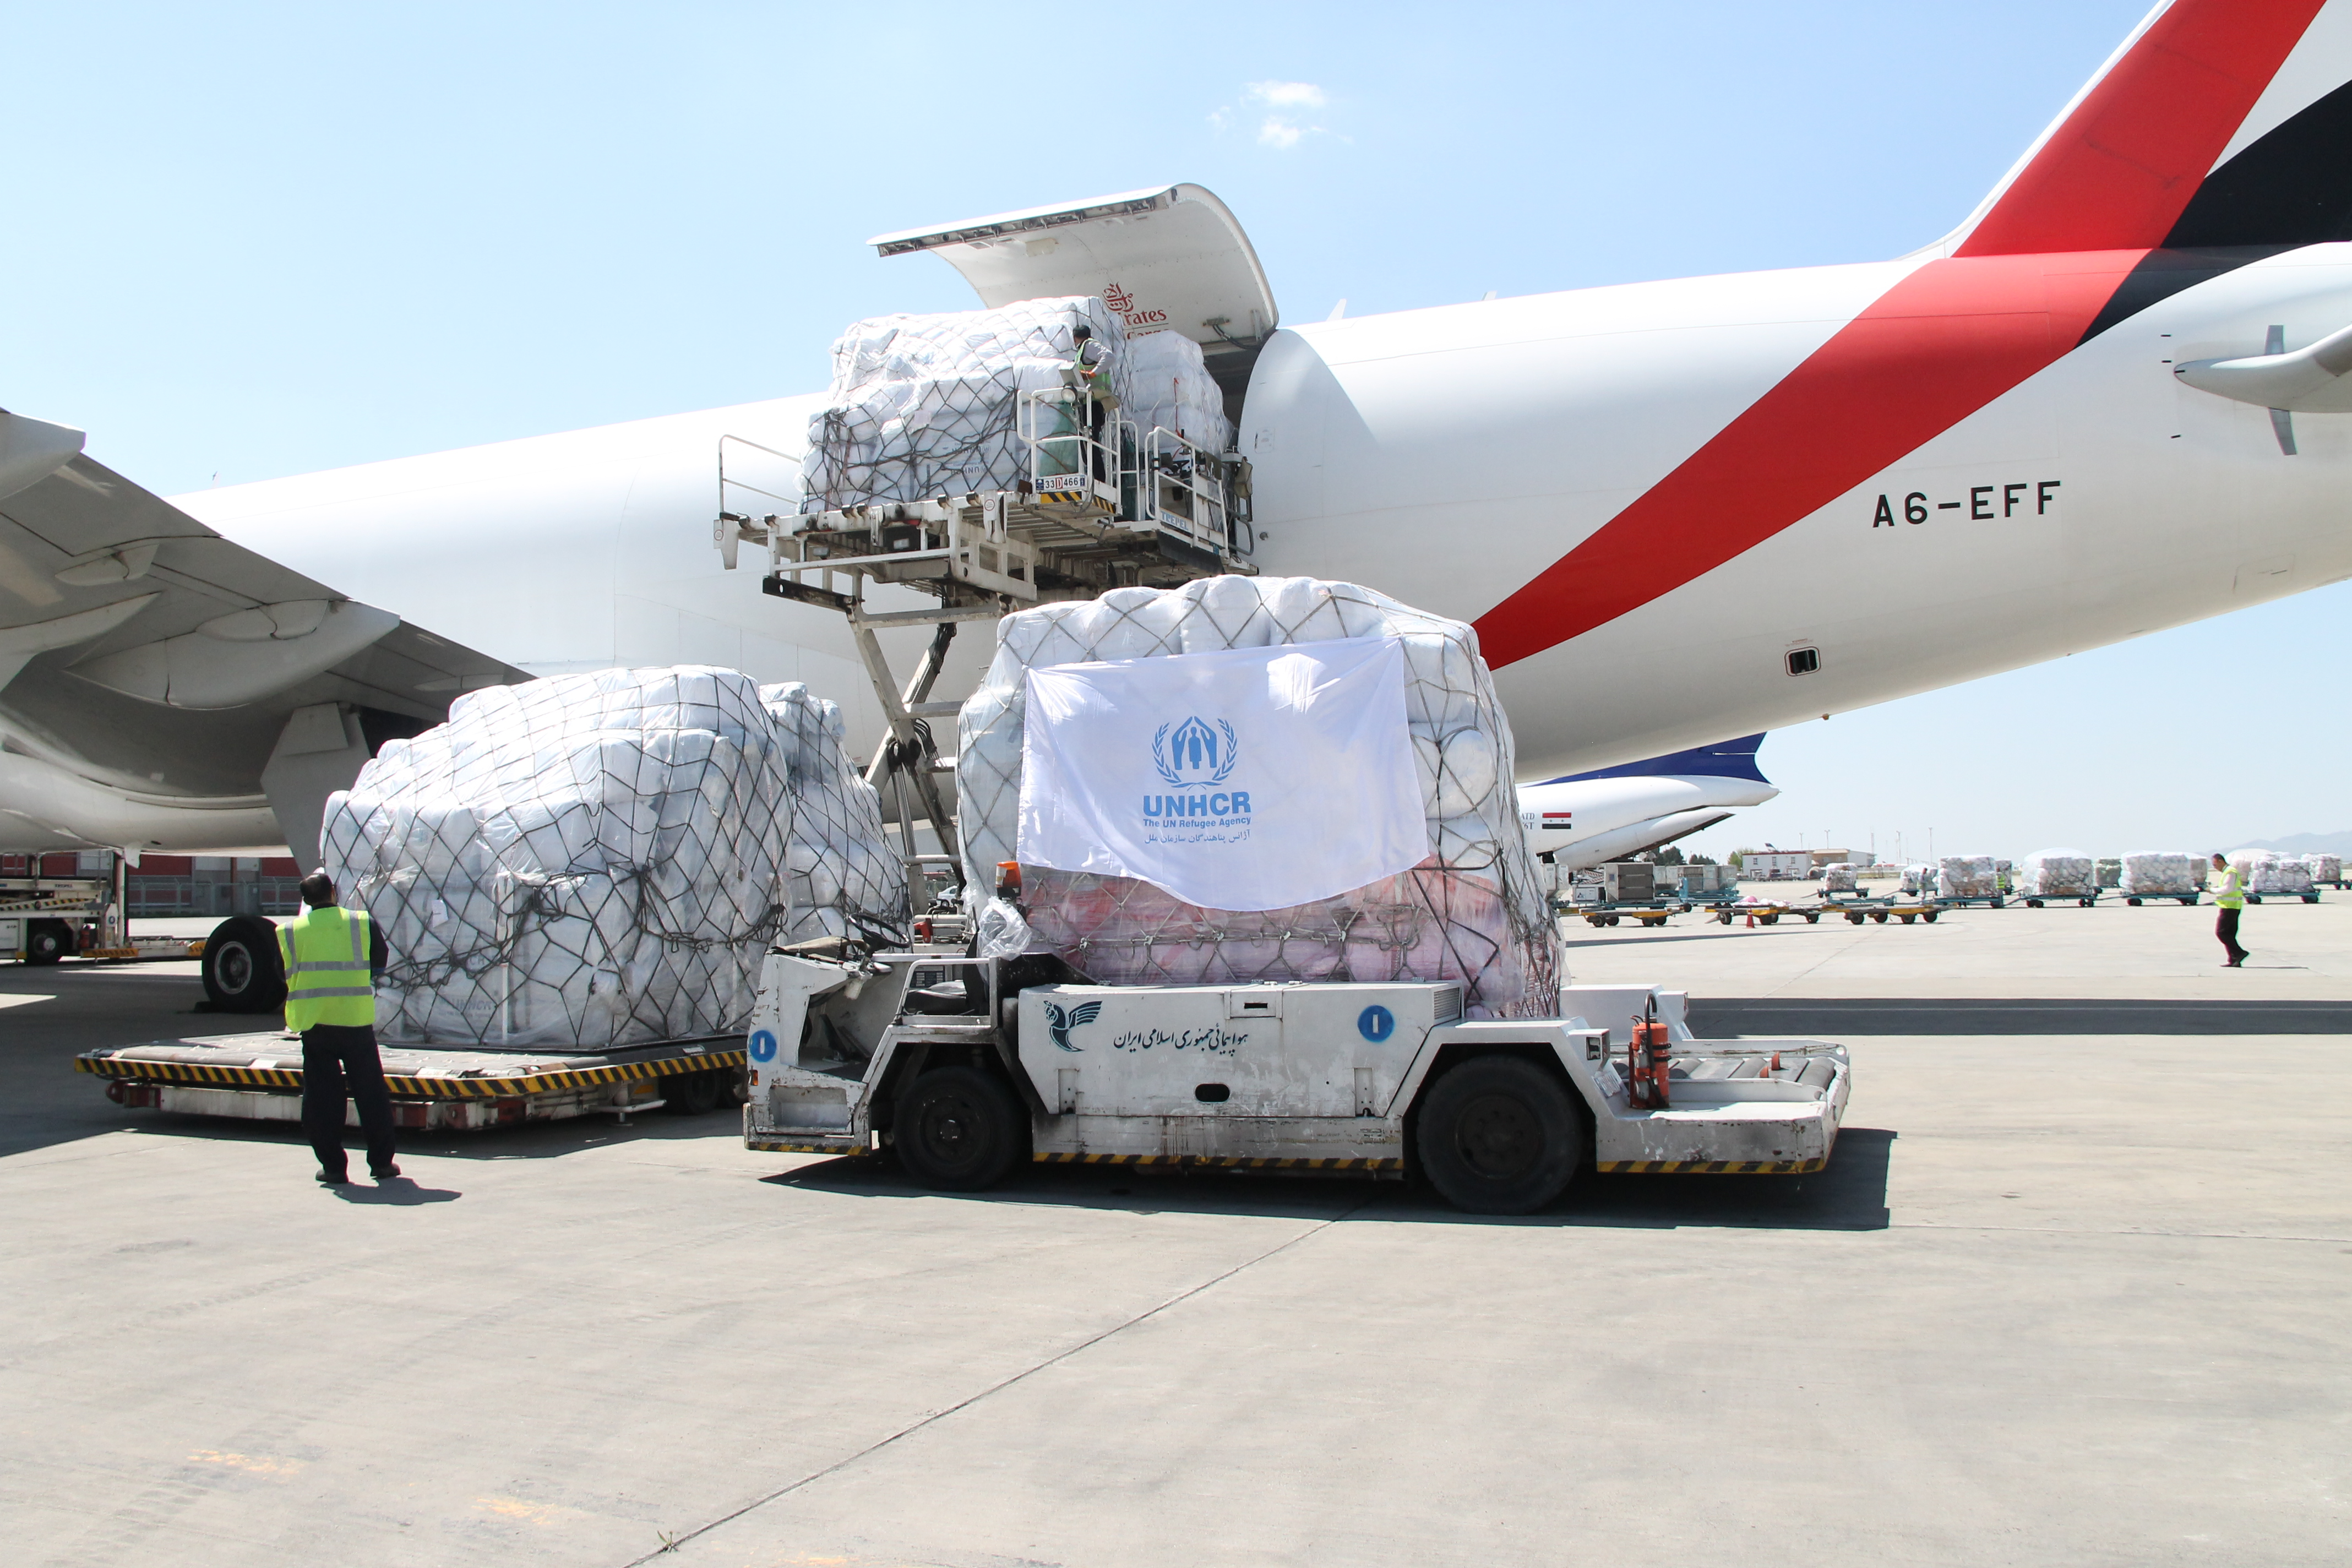 Unhcr Iran Air Freight Of Aid Lands In Tehran To Contribute Towards Government Led Flood Relief Efforts Unhcr Iran